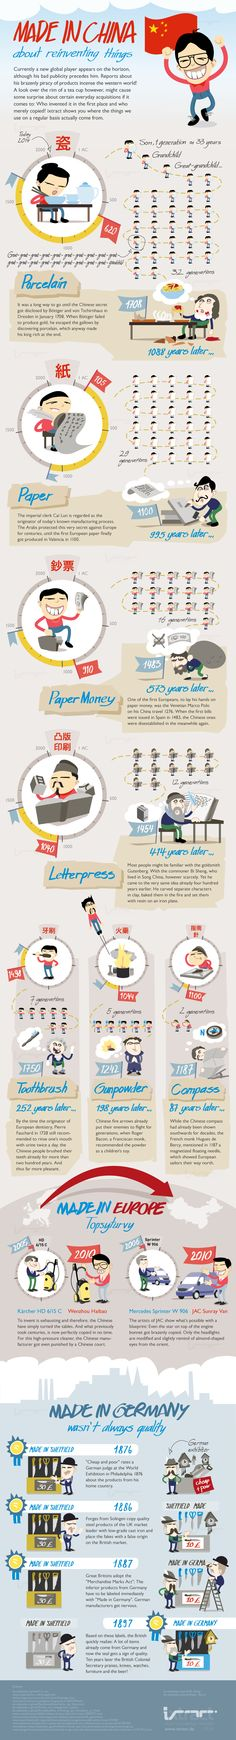 Made In China About Reinventing Things #China #Entertainment #Infographic